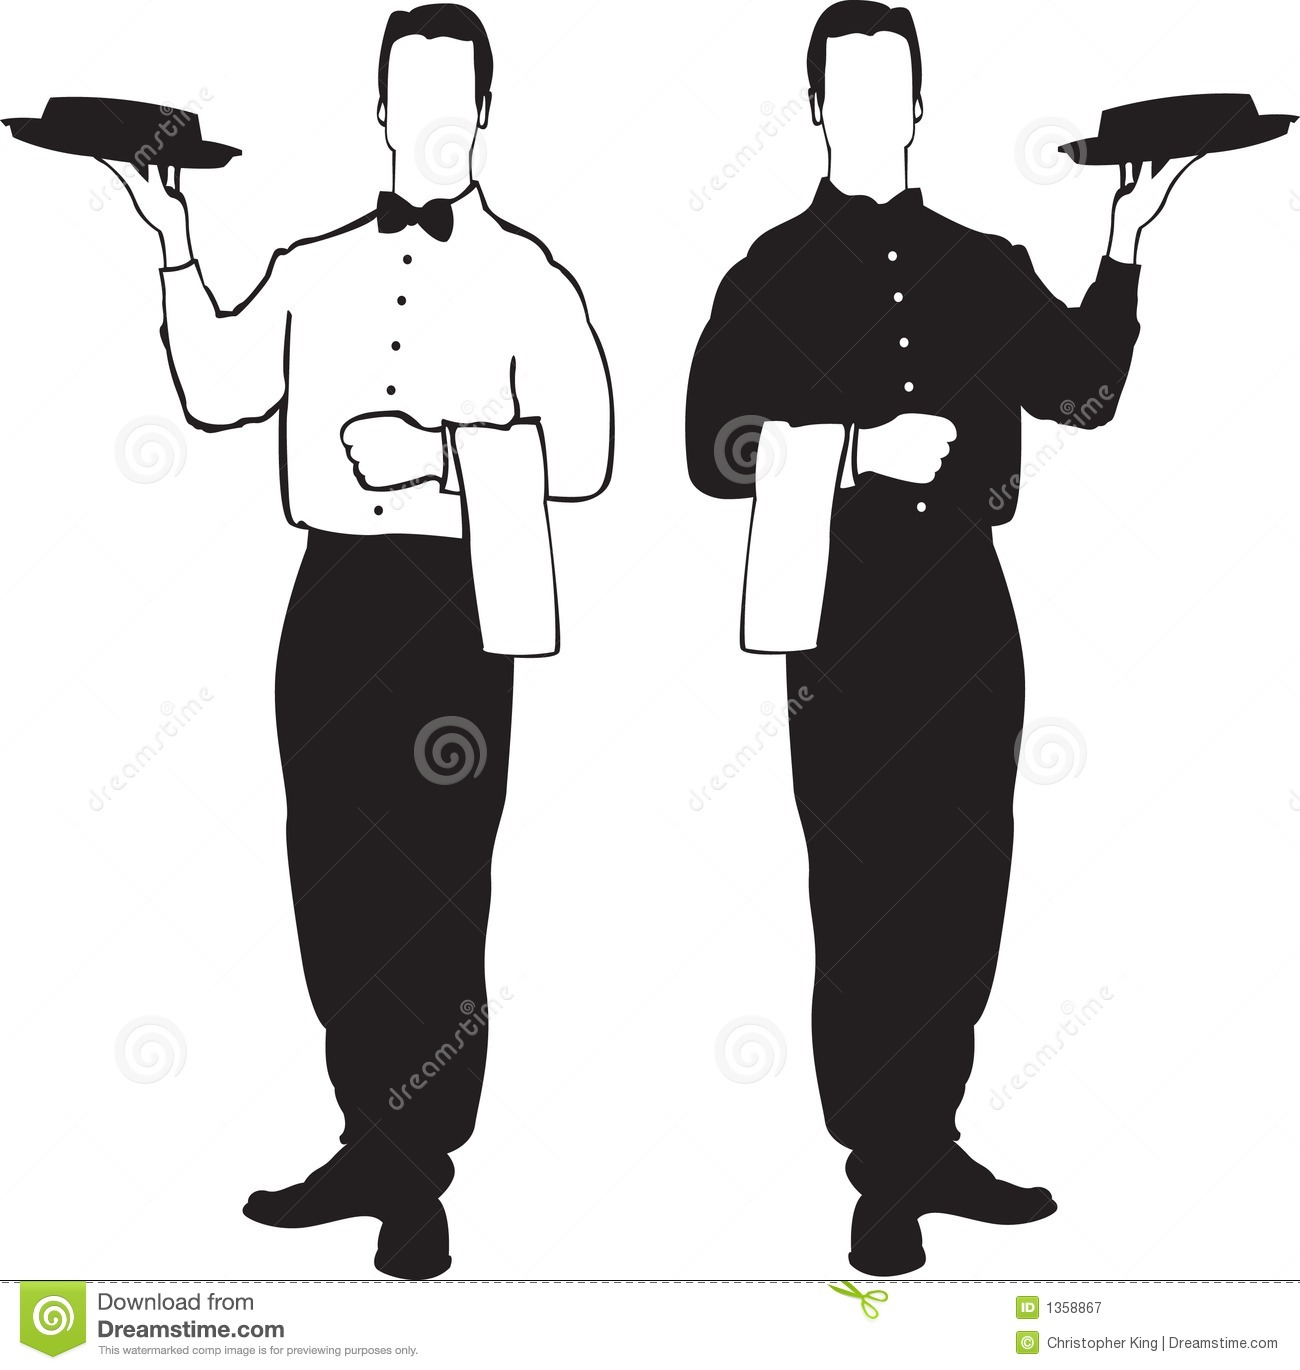 waiter illustrations service royalty free stock tiara clipart downloadable tiara clip art free download